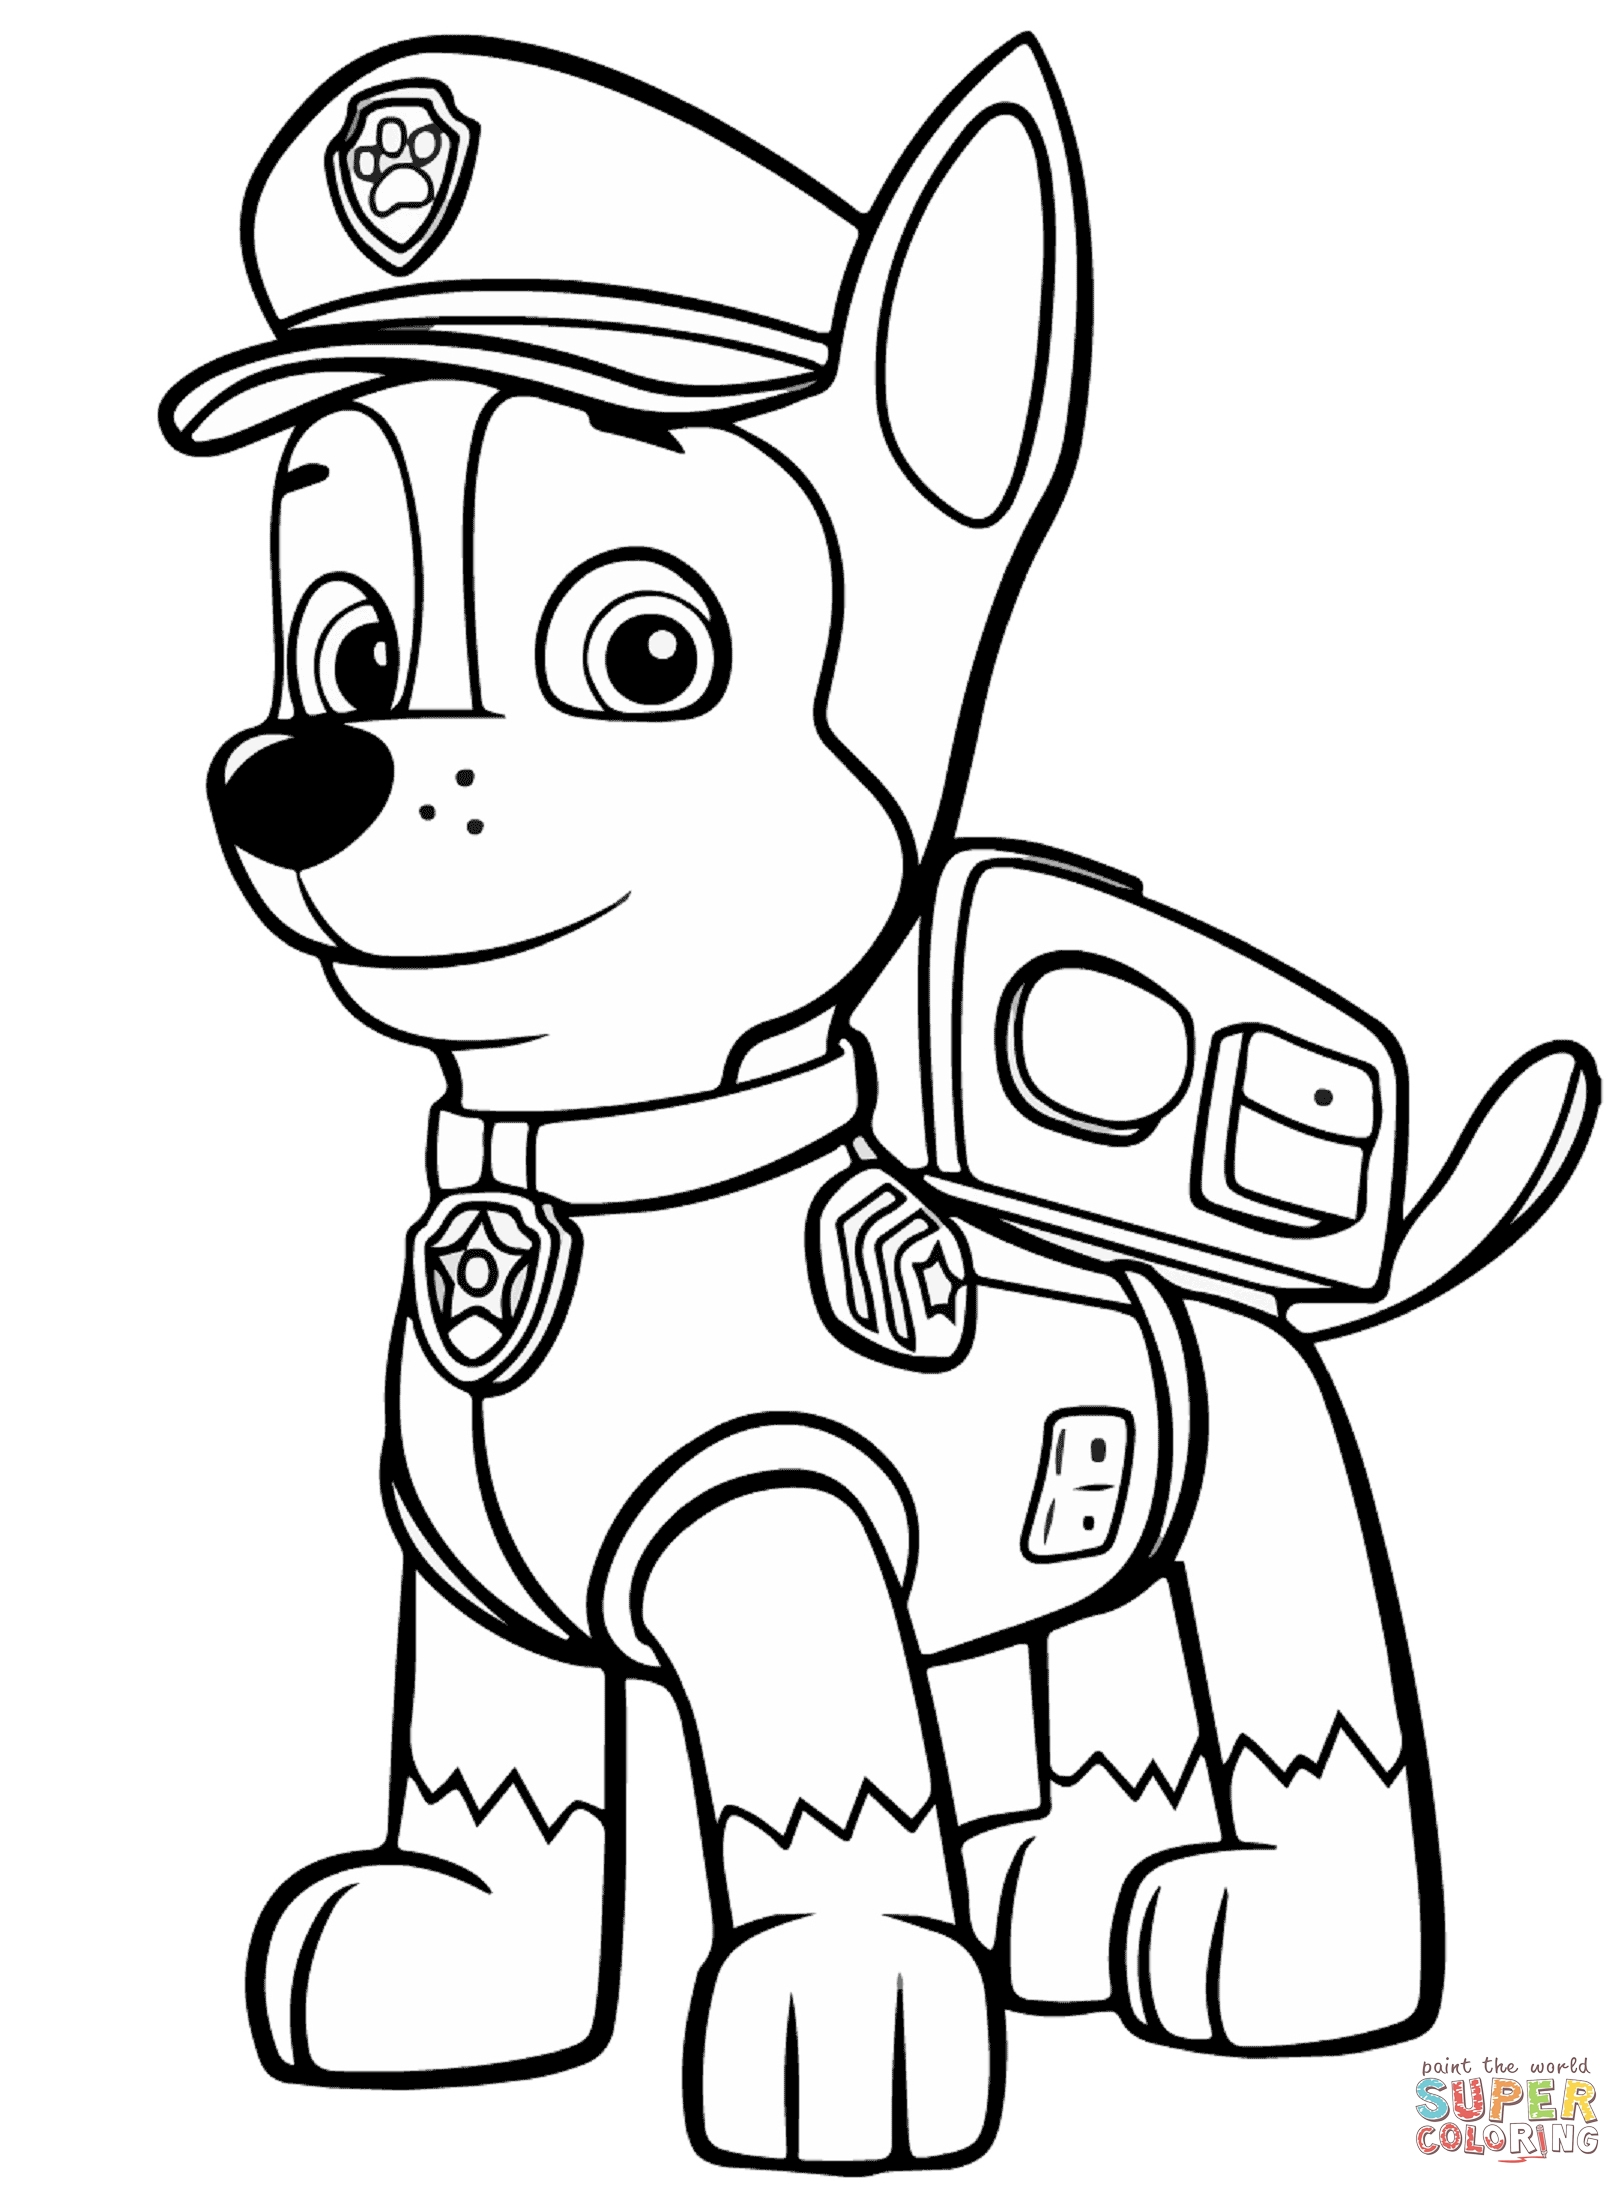 chase paw patrol coloring page - paw patrol chase coloring sketch templates